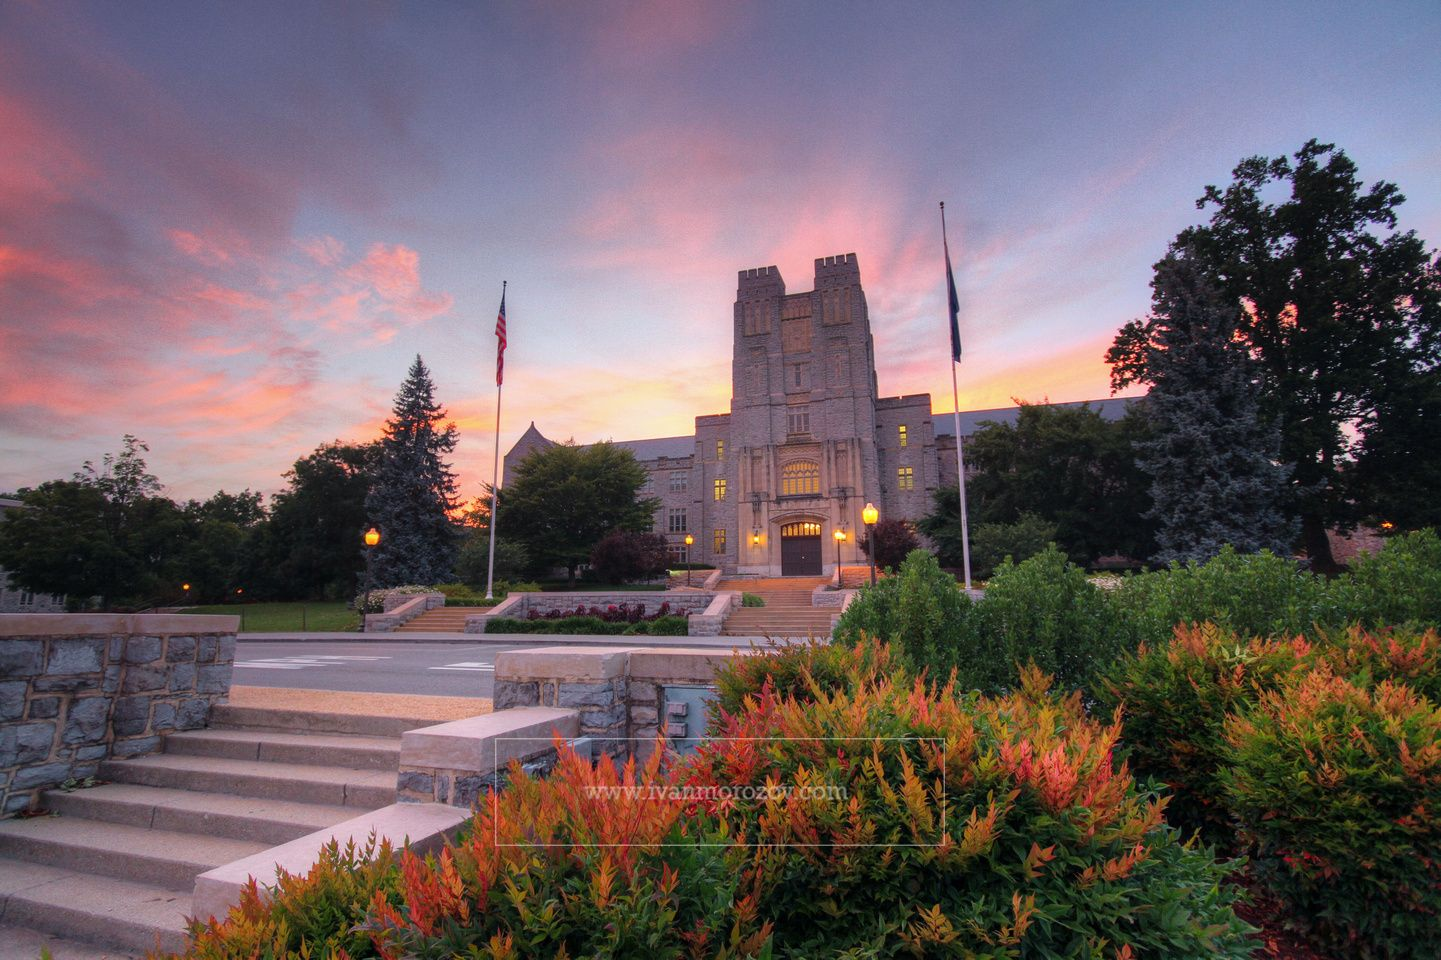 A quiet July evening at Burruss Hall on the campus of